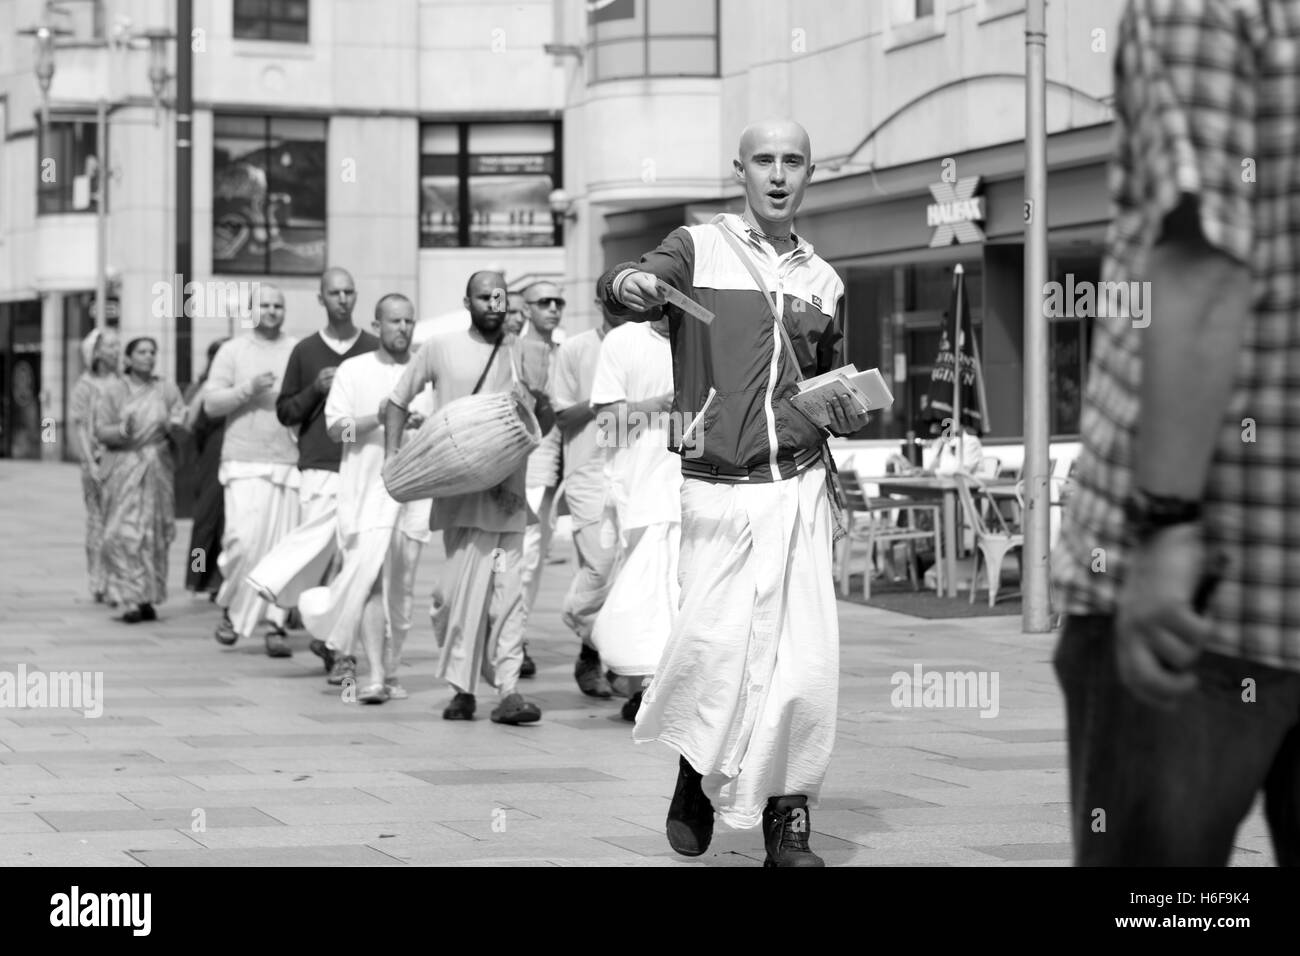 A group of Hare Krishna's chanting while walking through the streets of Cardiff handing out leaflets - Stock Image